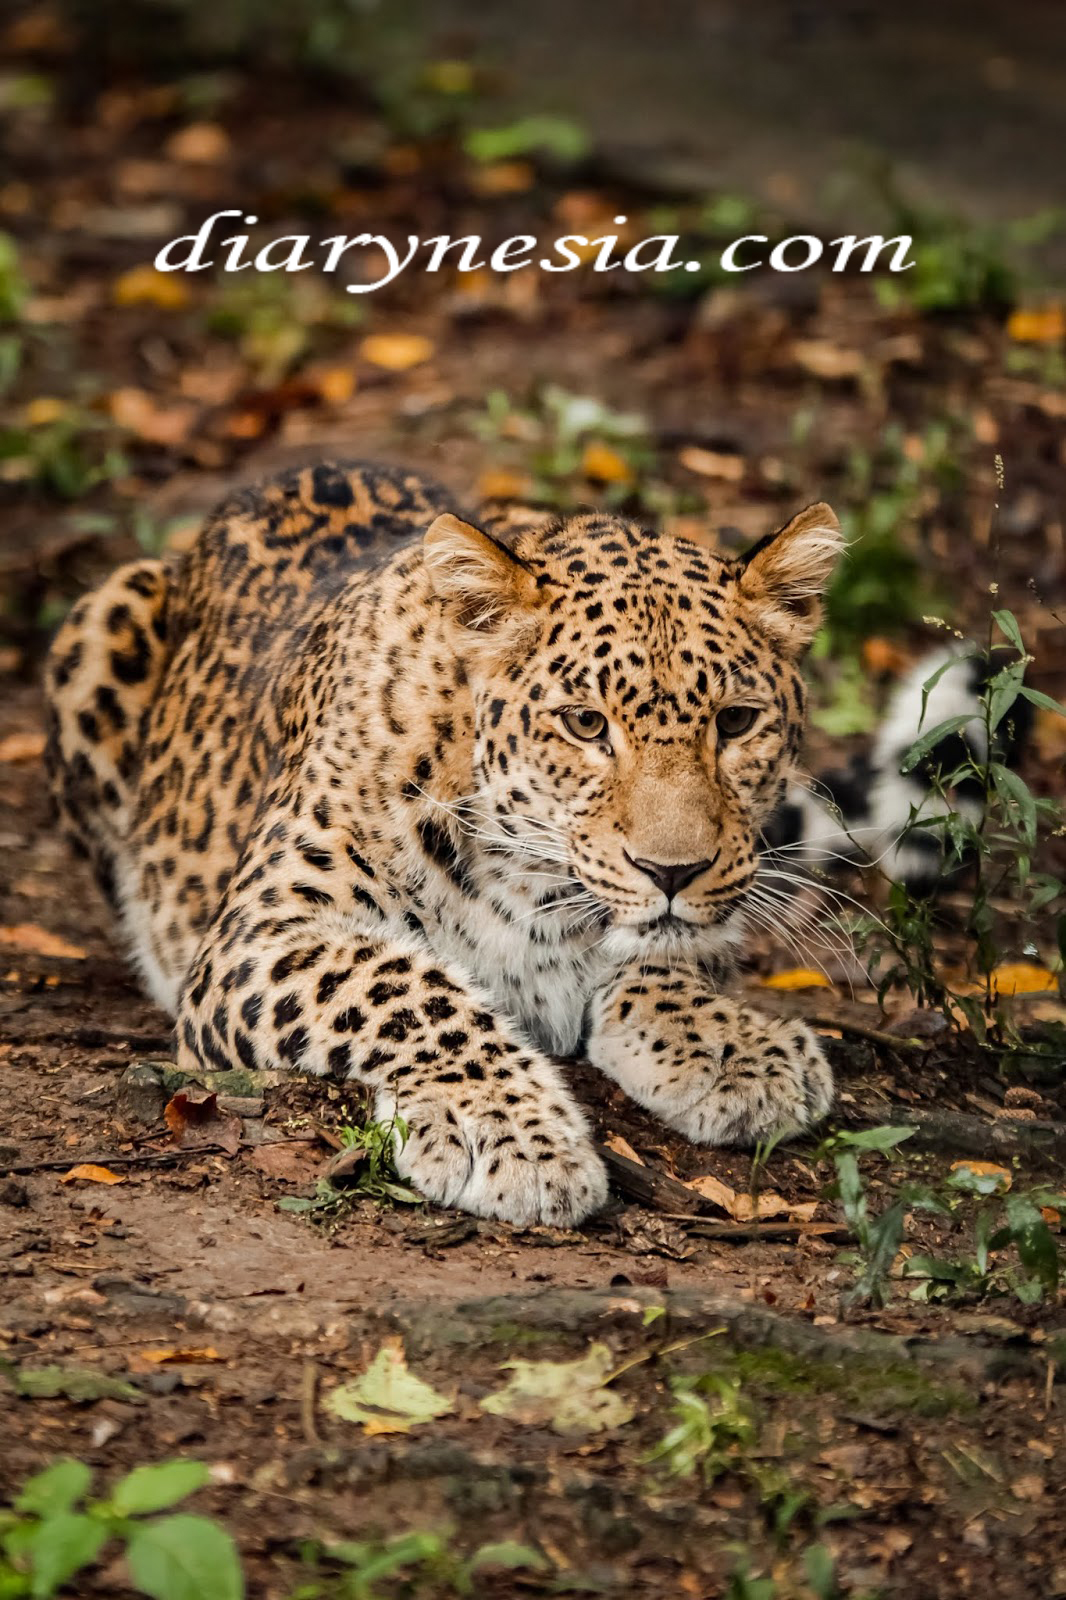 known species of wild cats, different types of wild cats, rare wild cat species, diarynesia